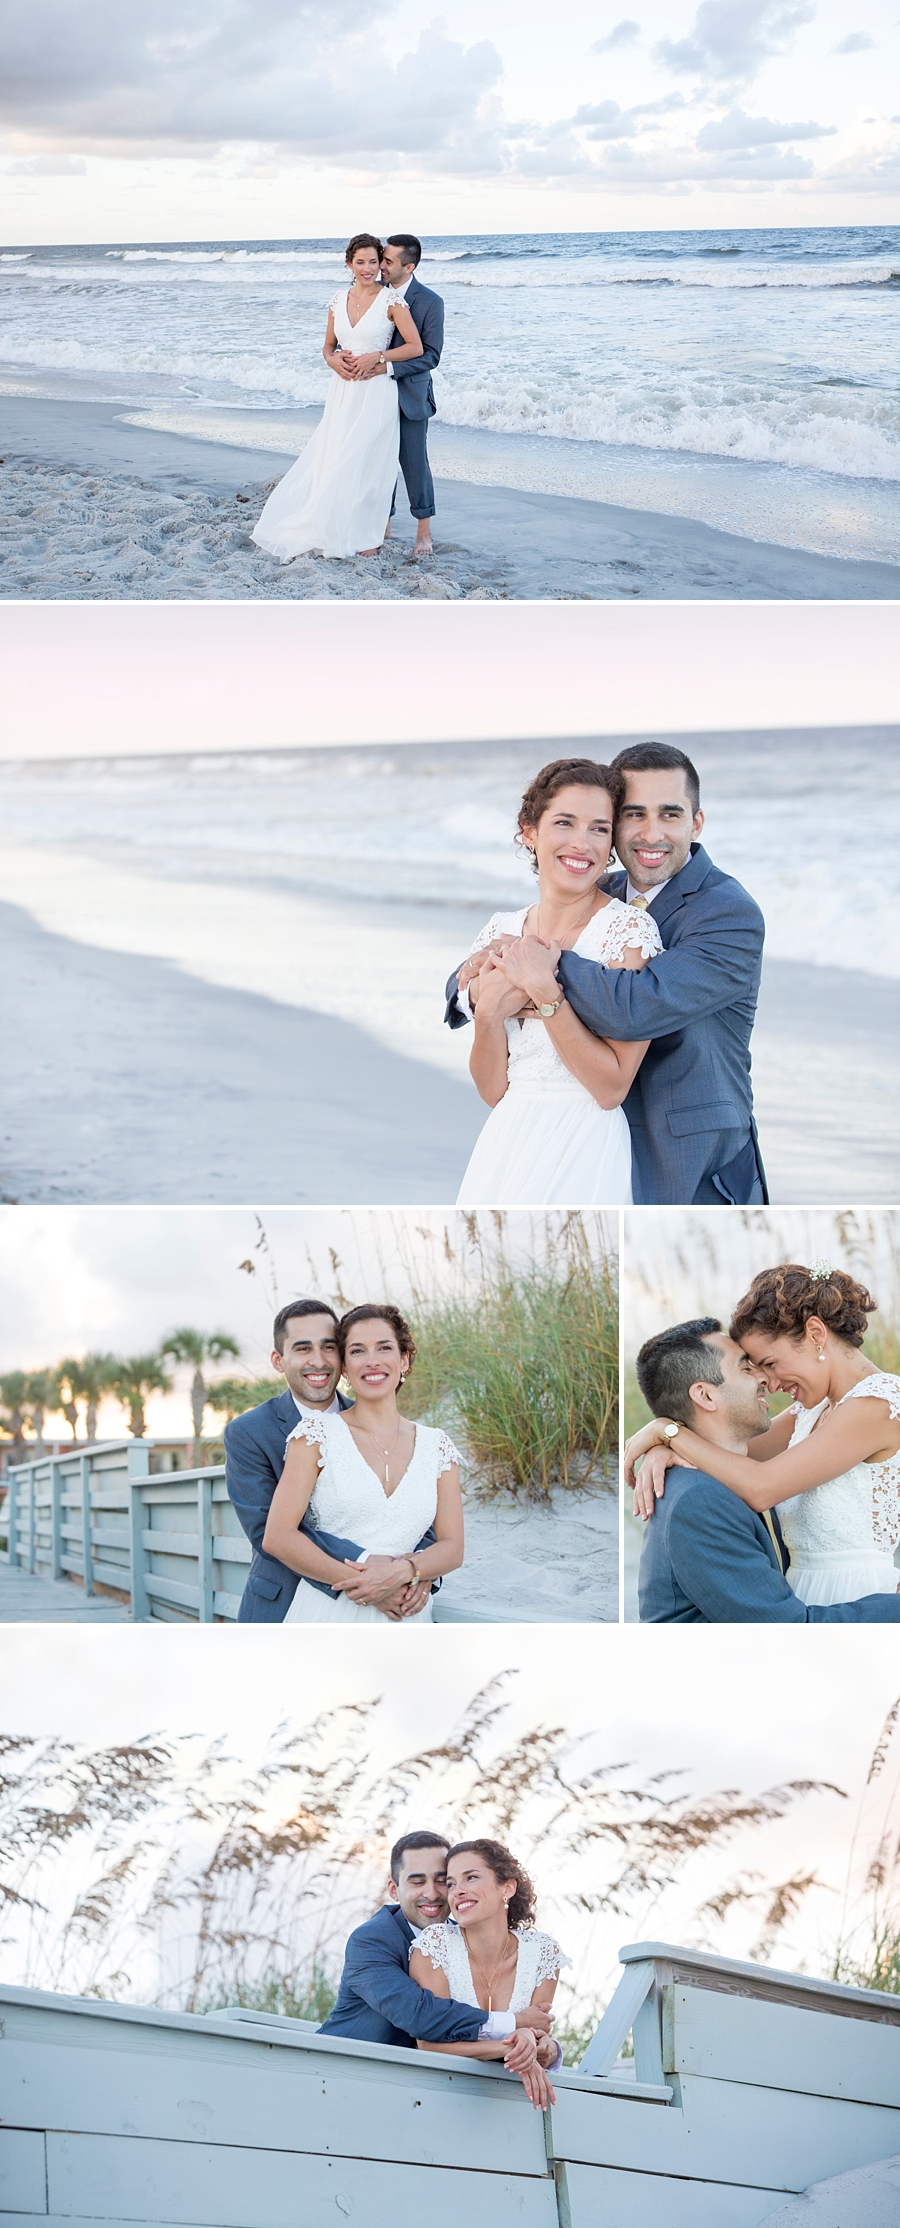 wedding beach photos in the sunset